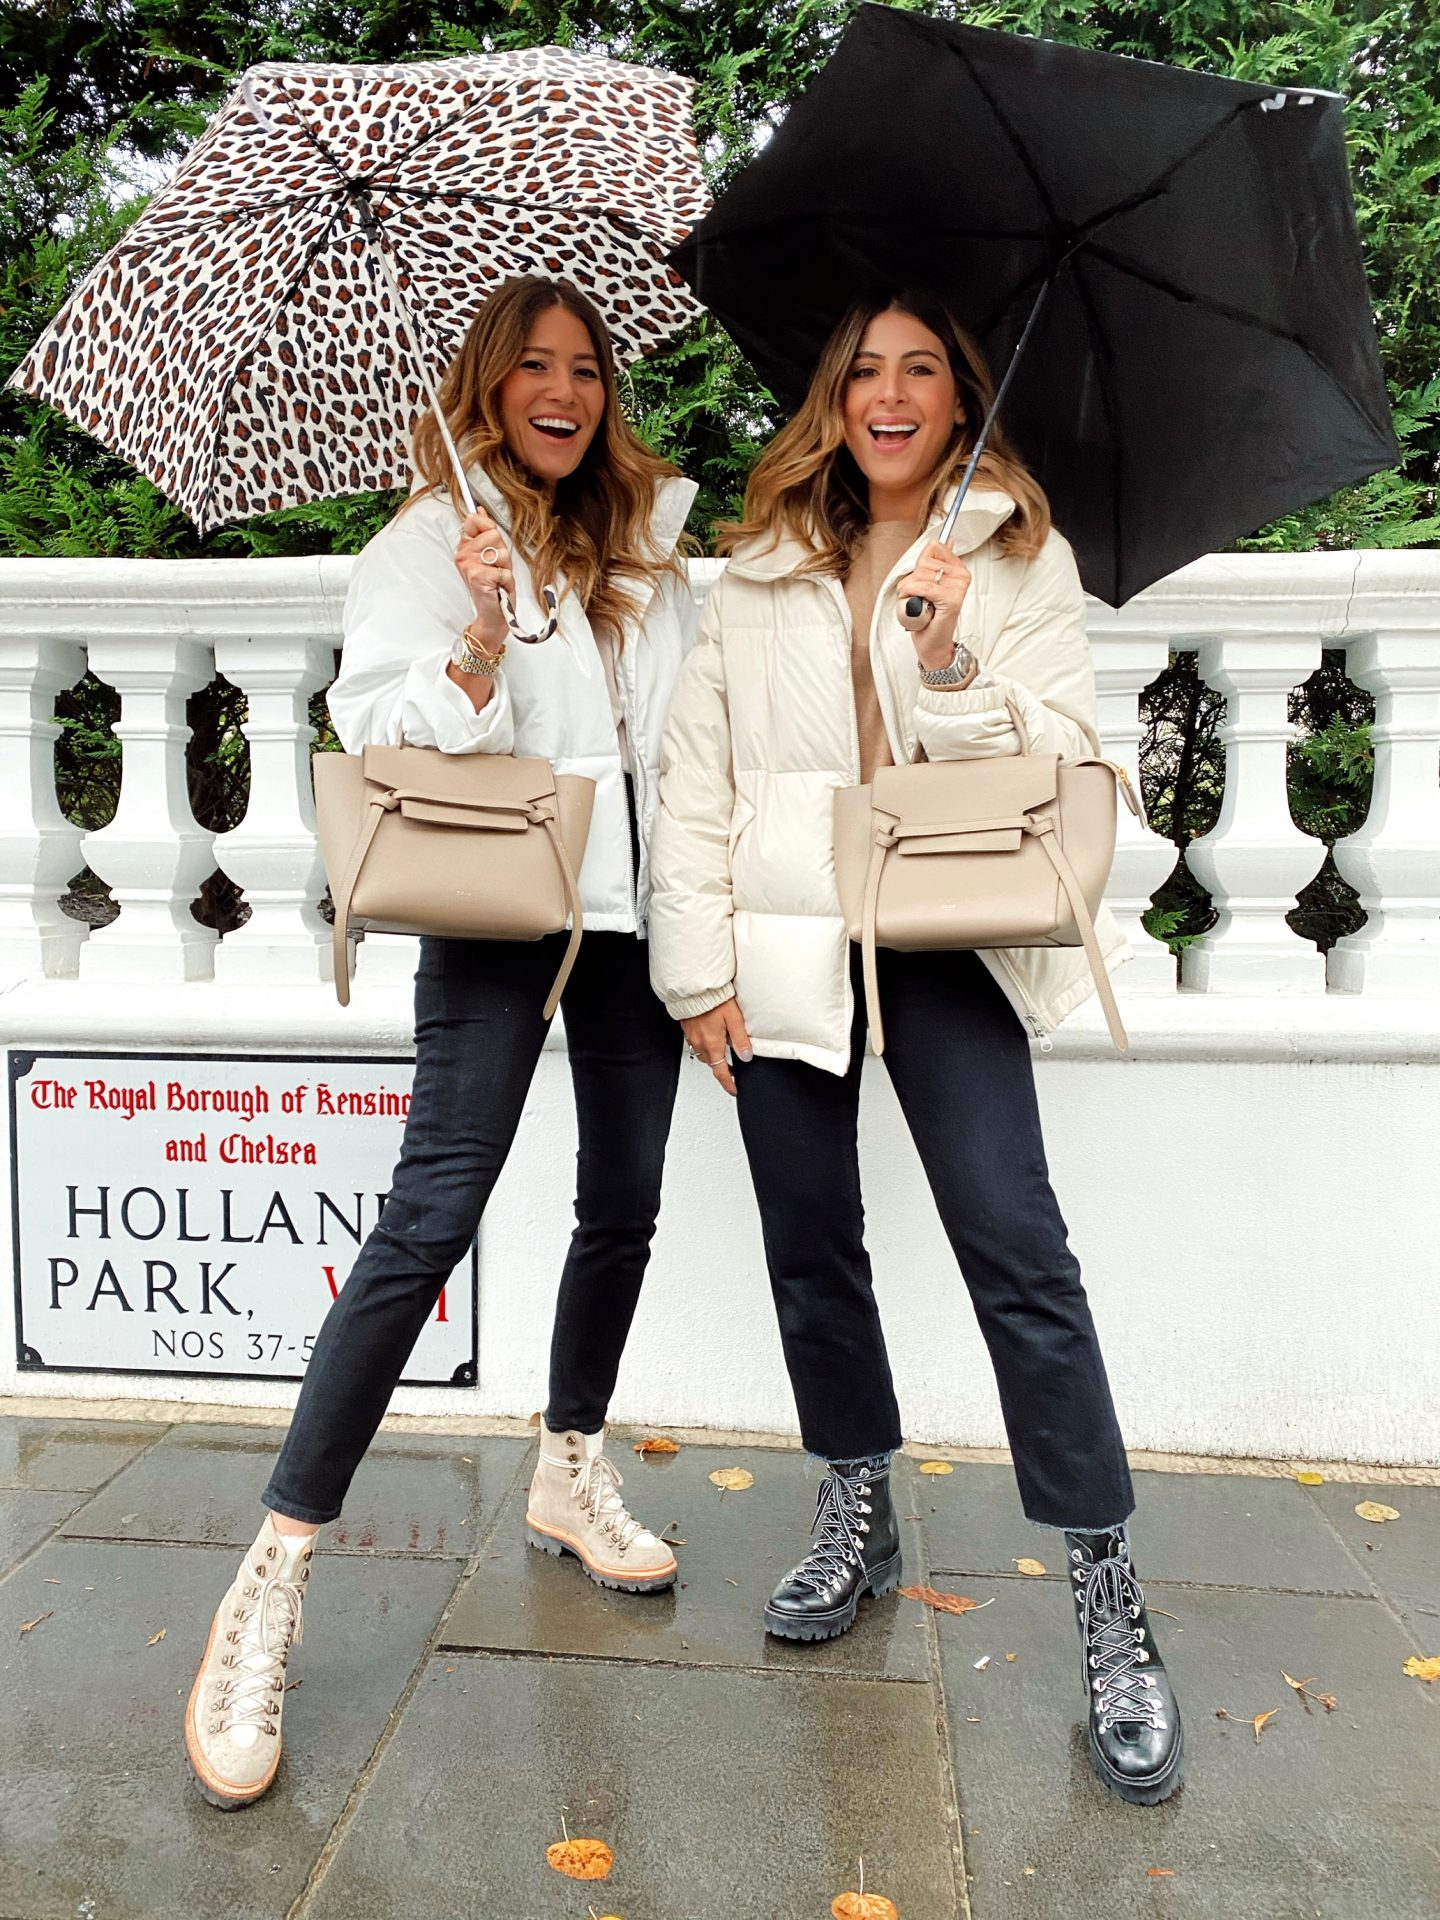 STAY DRY LOOK CHIC!